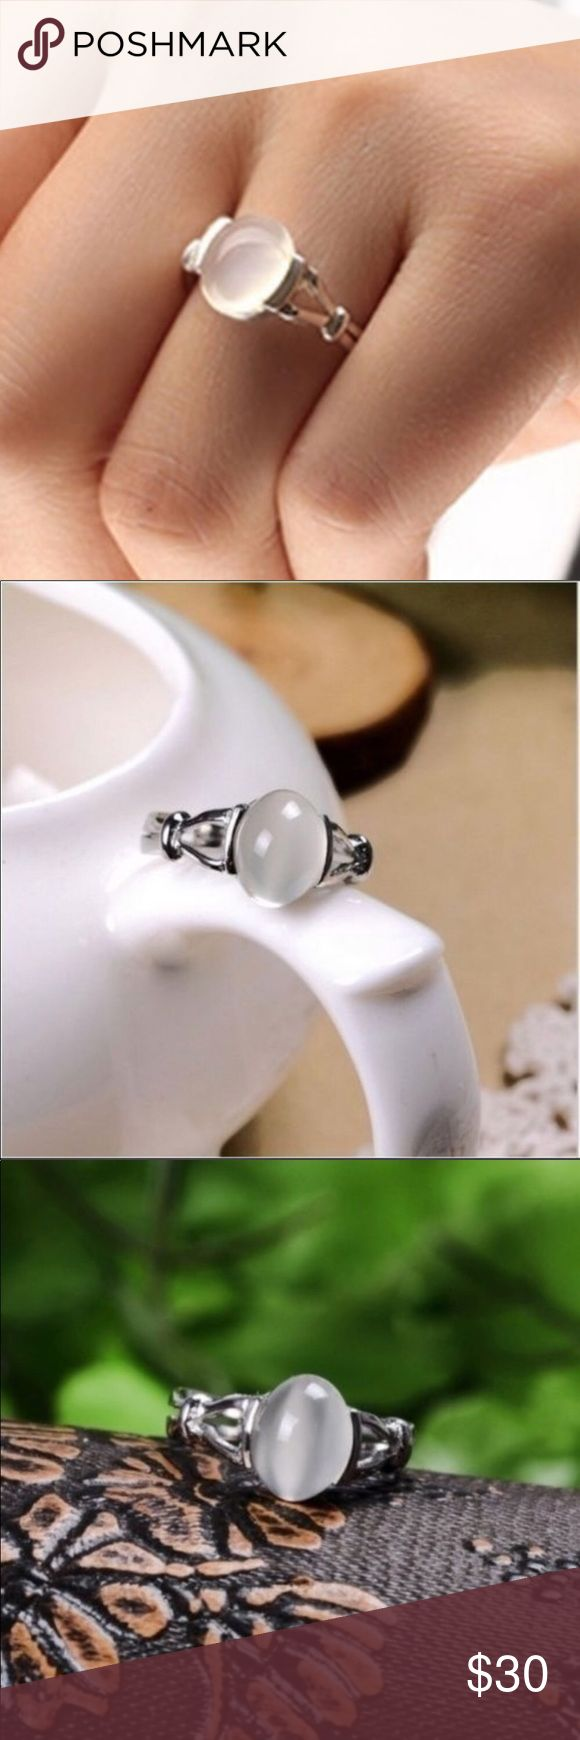 💍 10kt white gold filled Beautiful moonstone 10kt white gold filled ring. Comes with gift box. Price Firm. Farah Jewelry Jewelry Rings